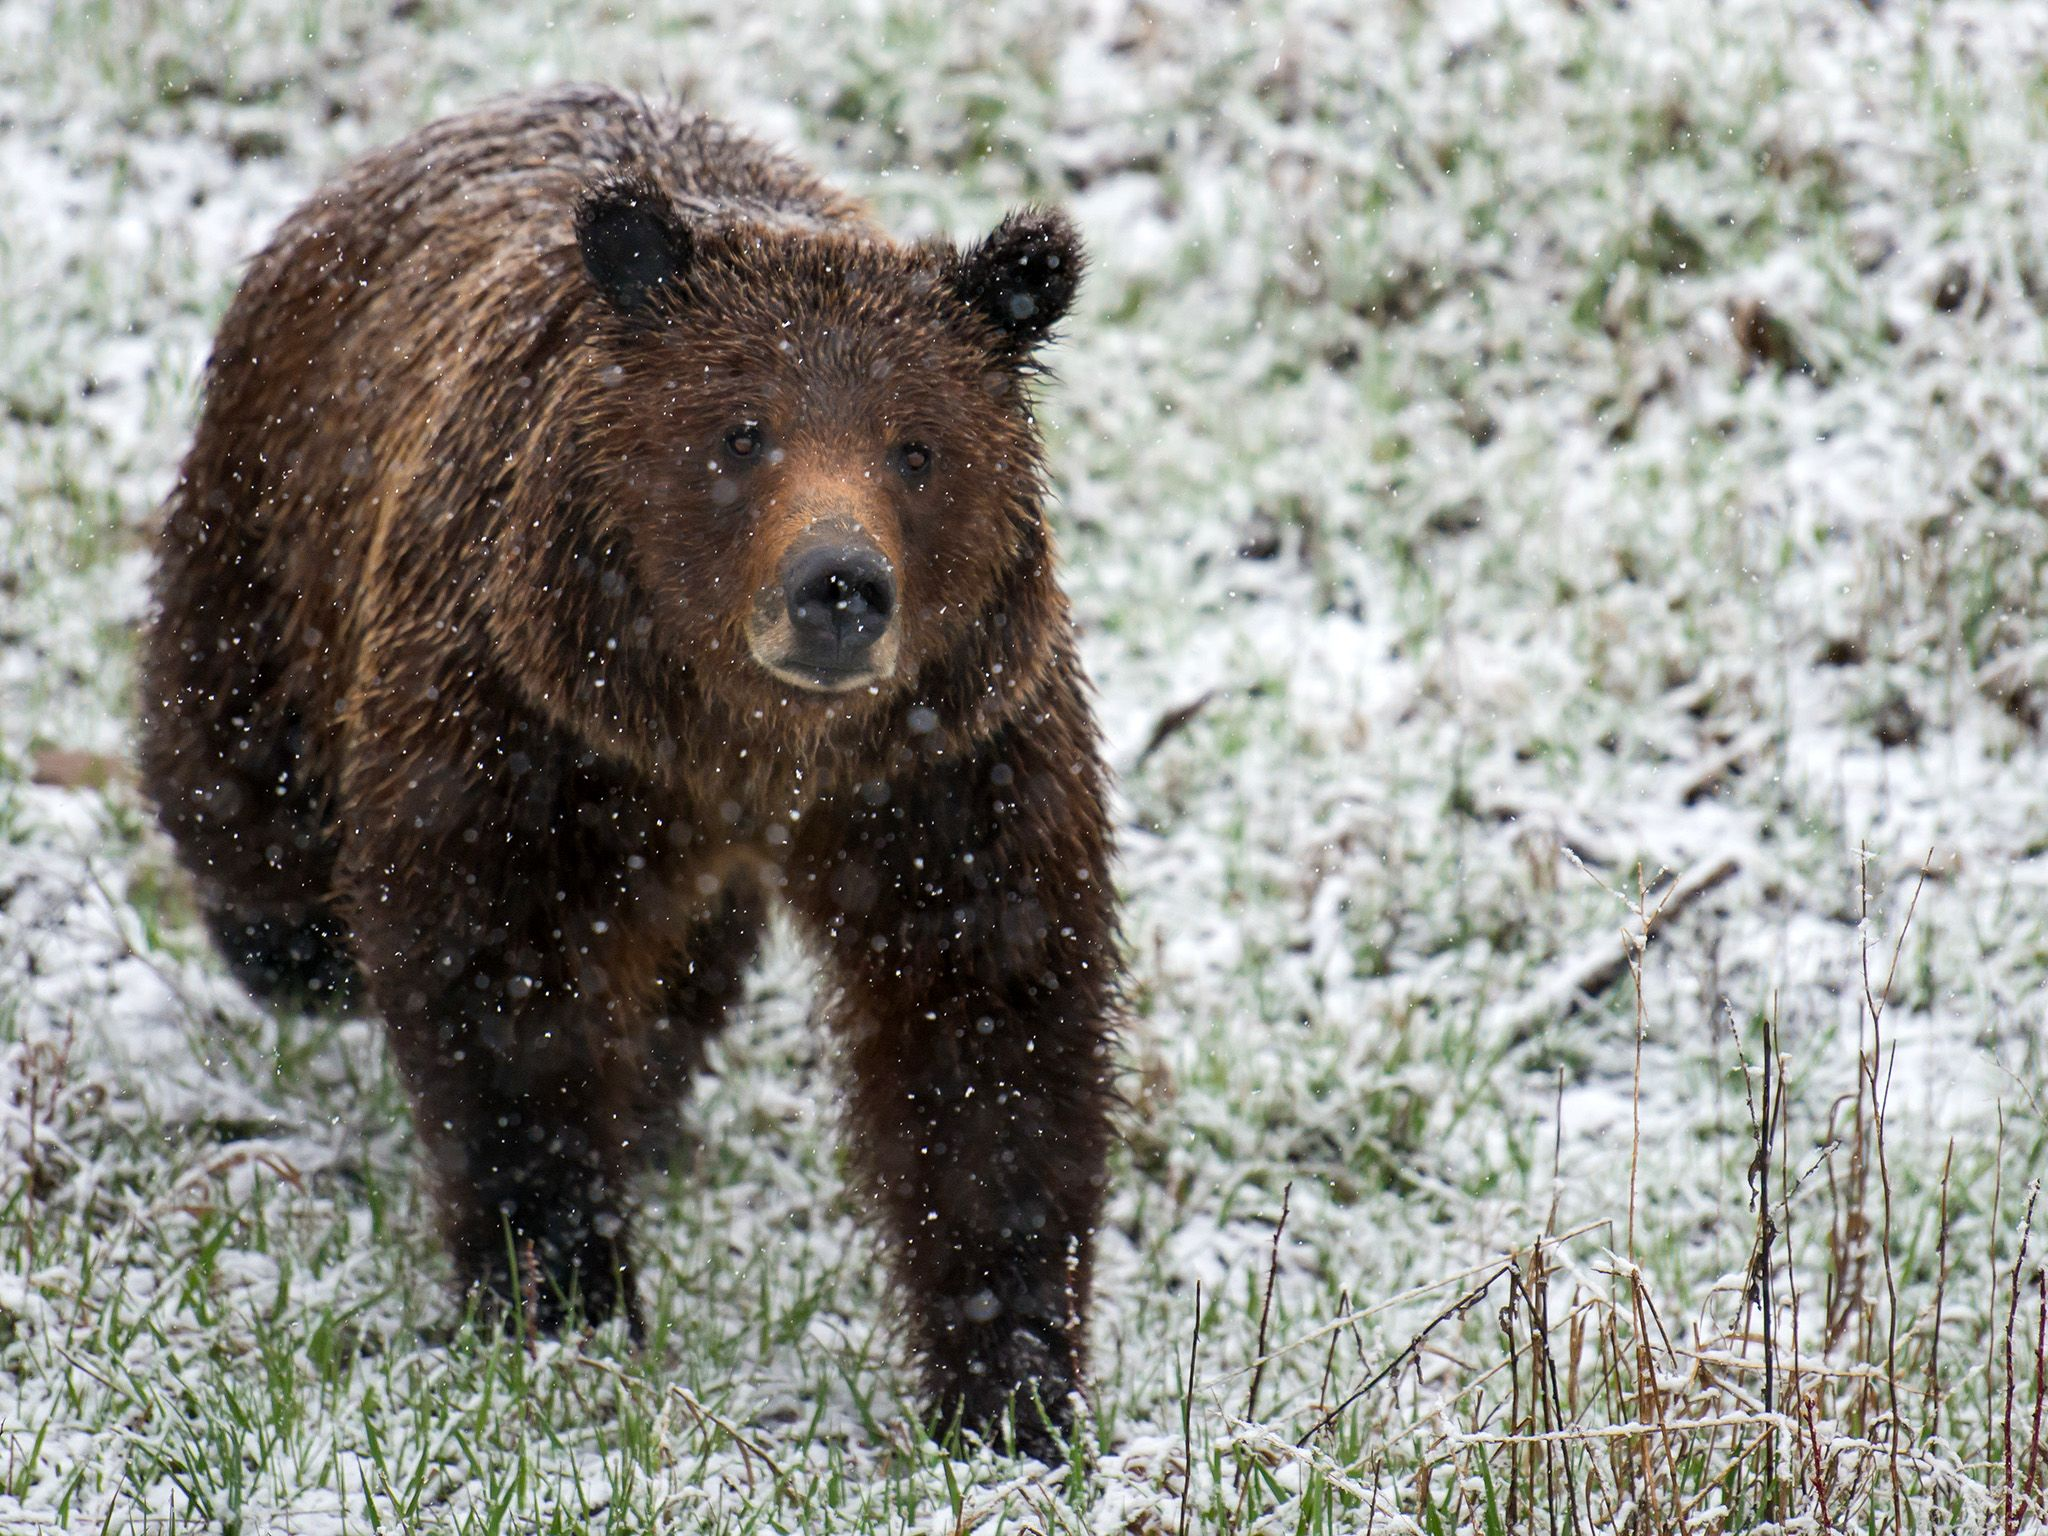 Grand Teton National Park, Wyo.: Brown bear in the early spring snow. This image is from Wild Yel... [ΦΩΤΟΓΡΑΦΙΑ ΤΗΣ ΗΜΕΡΑΣ - ΑΠΡΙΛΙΟΥ 2015]